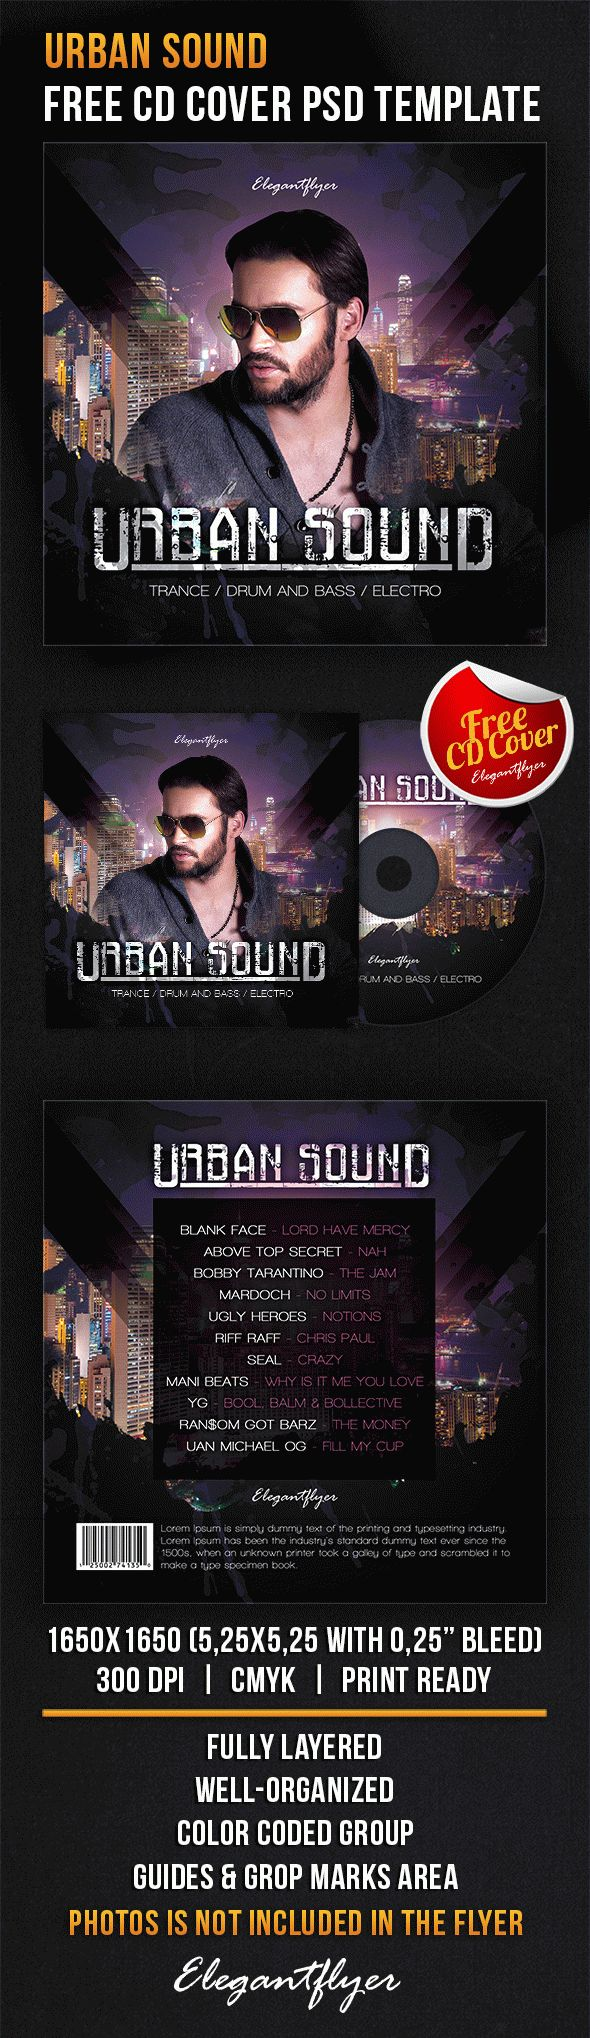 free cd cover urban sound free cd dvd cover templates